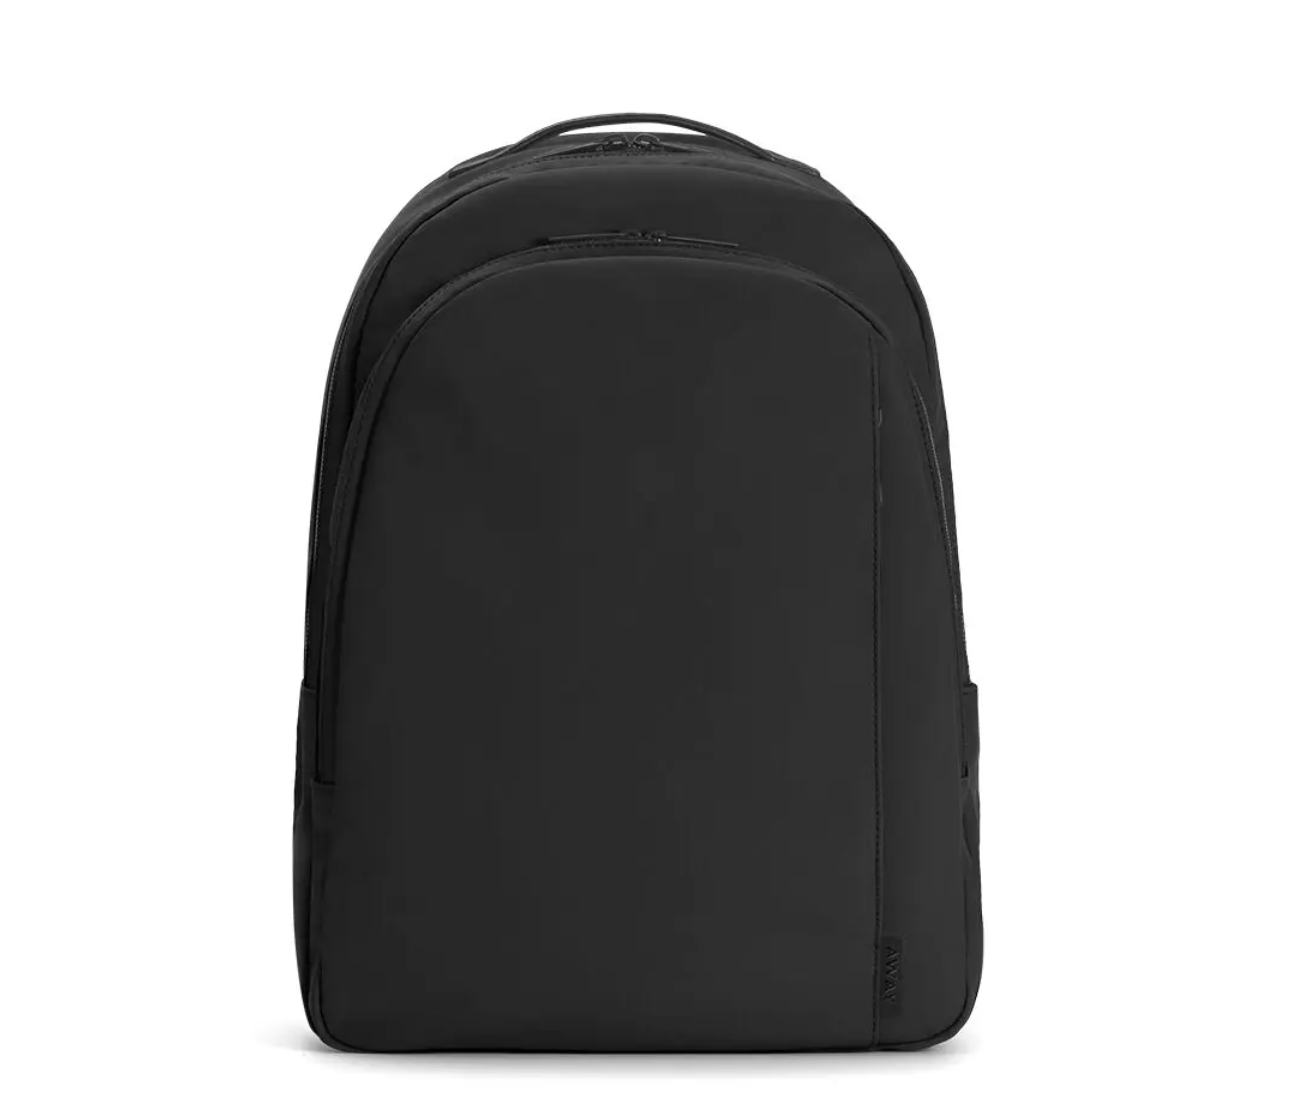 gift guide for him, christmas gifts for him, gifts for the man who has everything, gifts for men, gifts for dad, gifts for husband, gift guide for husband, olivia rink husband, olivia rink fiance, gifts for boyfriend, 2020 boyfriend christmas gifts, olivia rink conner, away backpack for men, away luggage